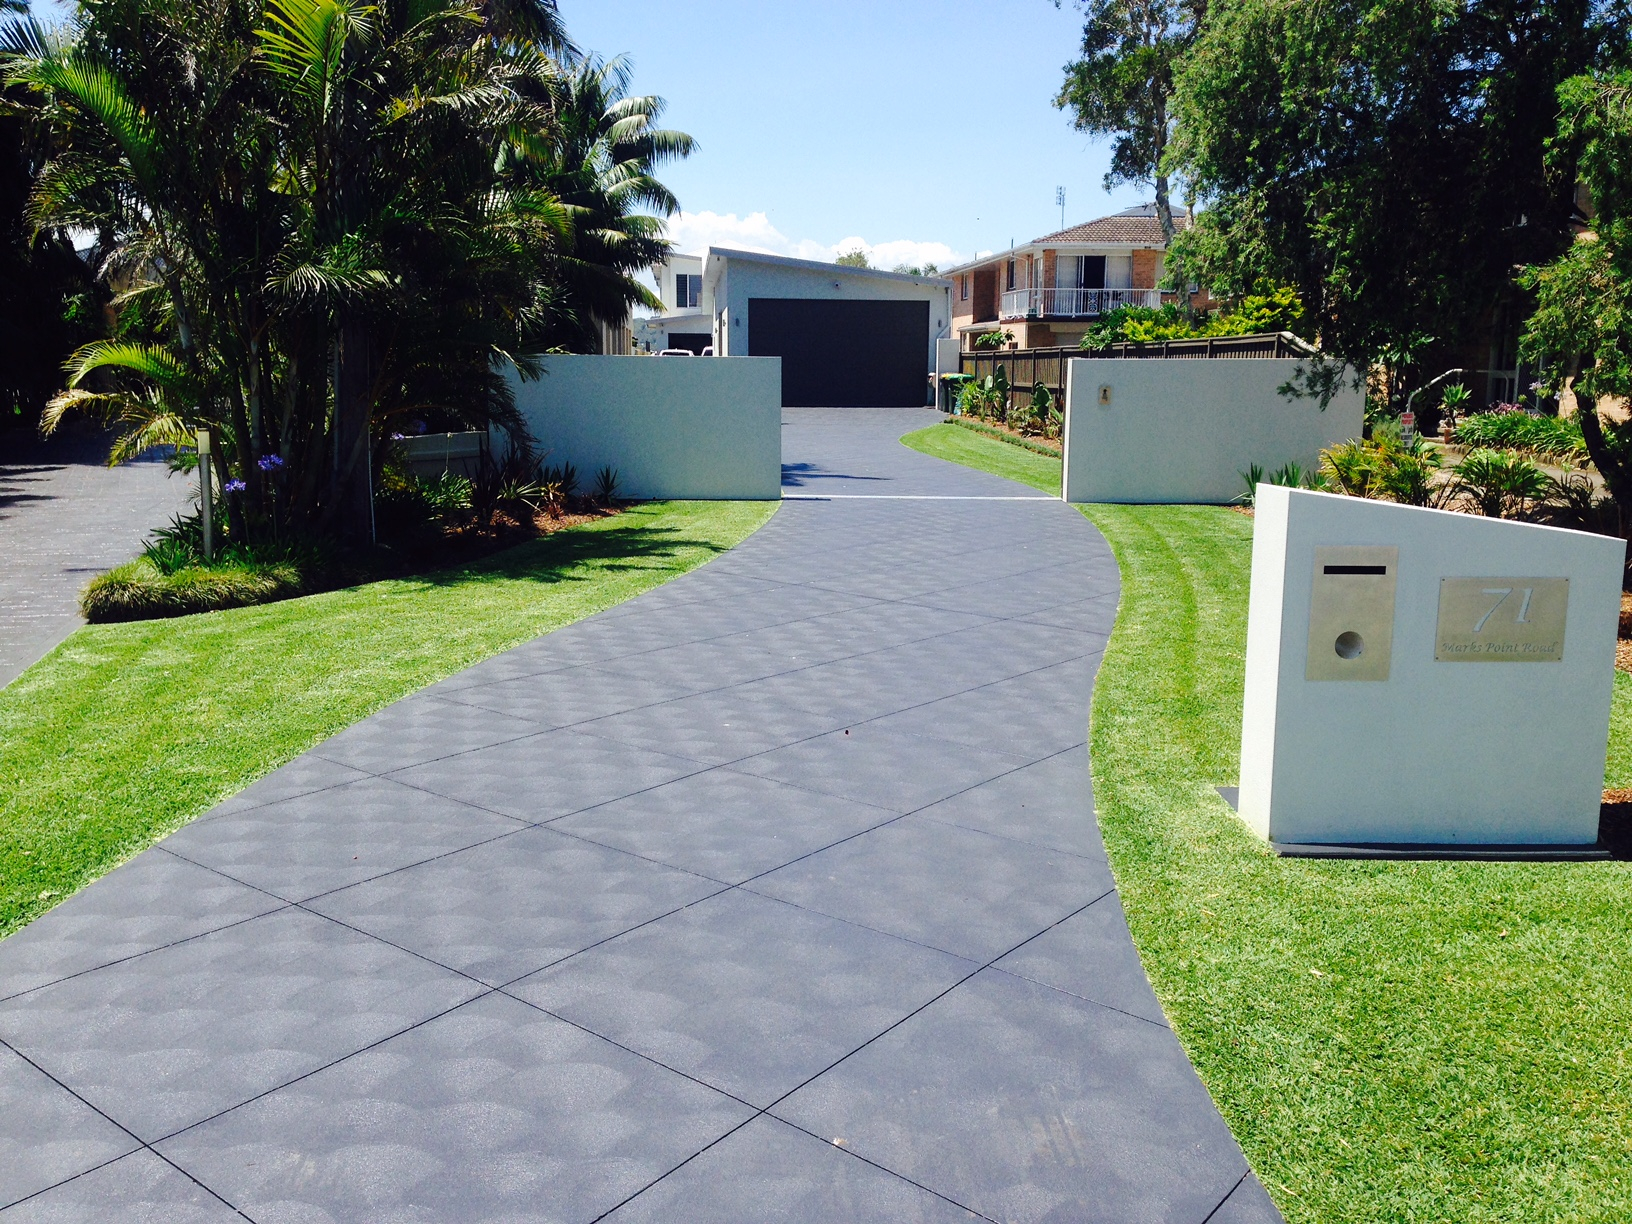 Driveway Concreting in Newcastle and Surrounds